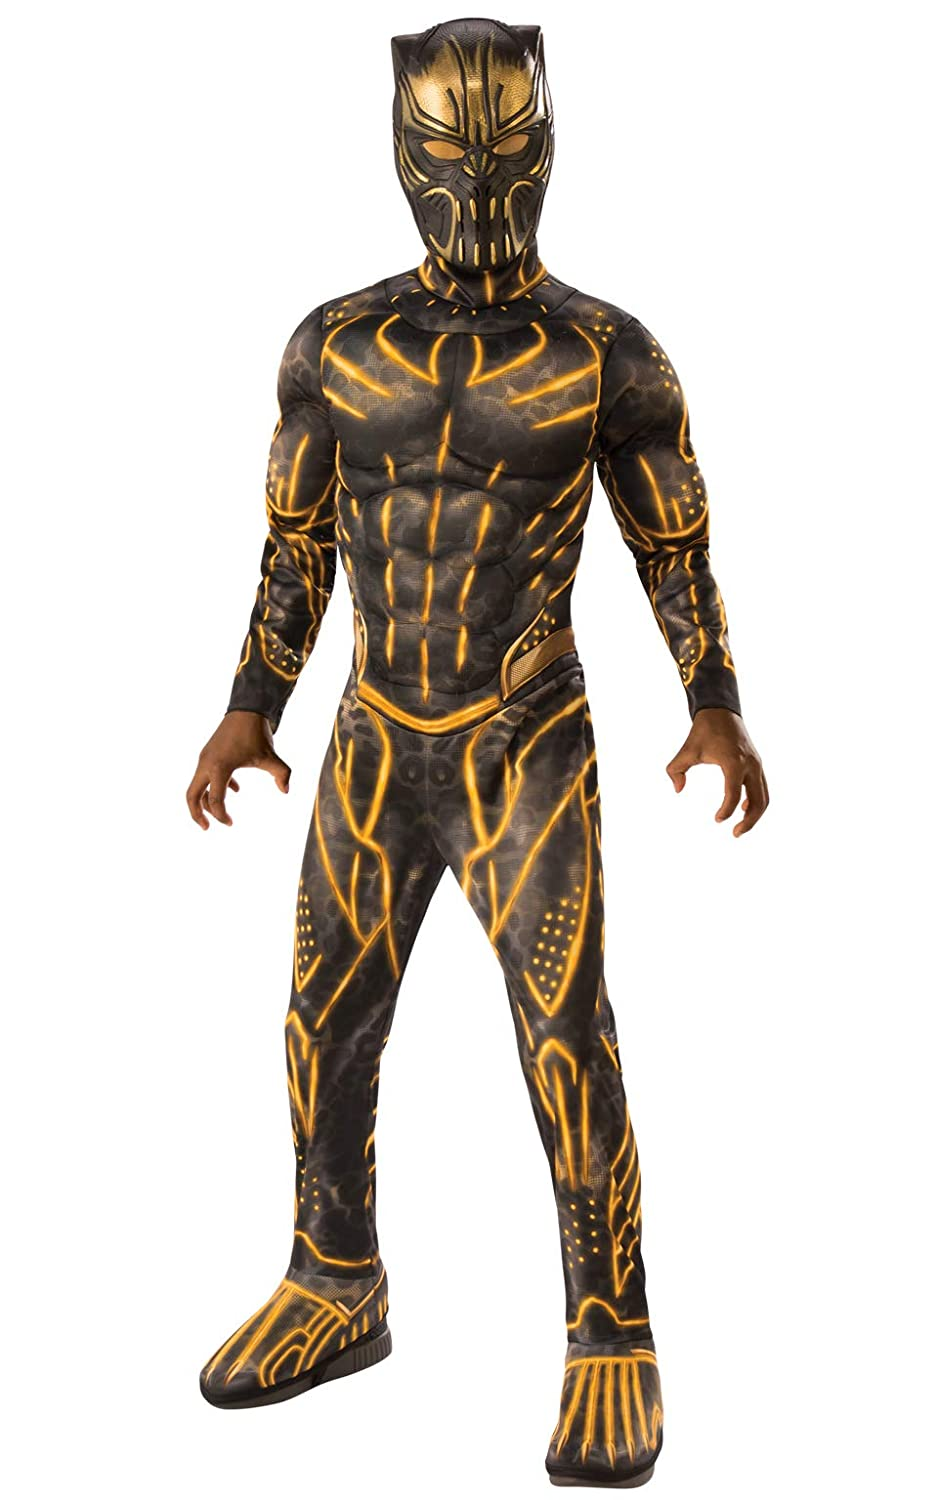 Rubie's Official Marvel Black Panther Movie, Killmonger Childs Deluxe Costume,  Small Age 3-4, Height 117 cm Rubie's 641050